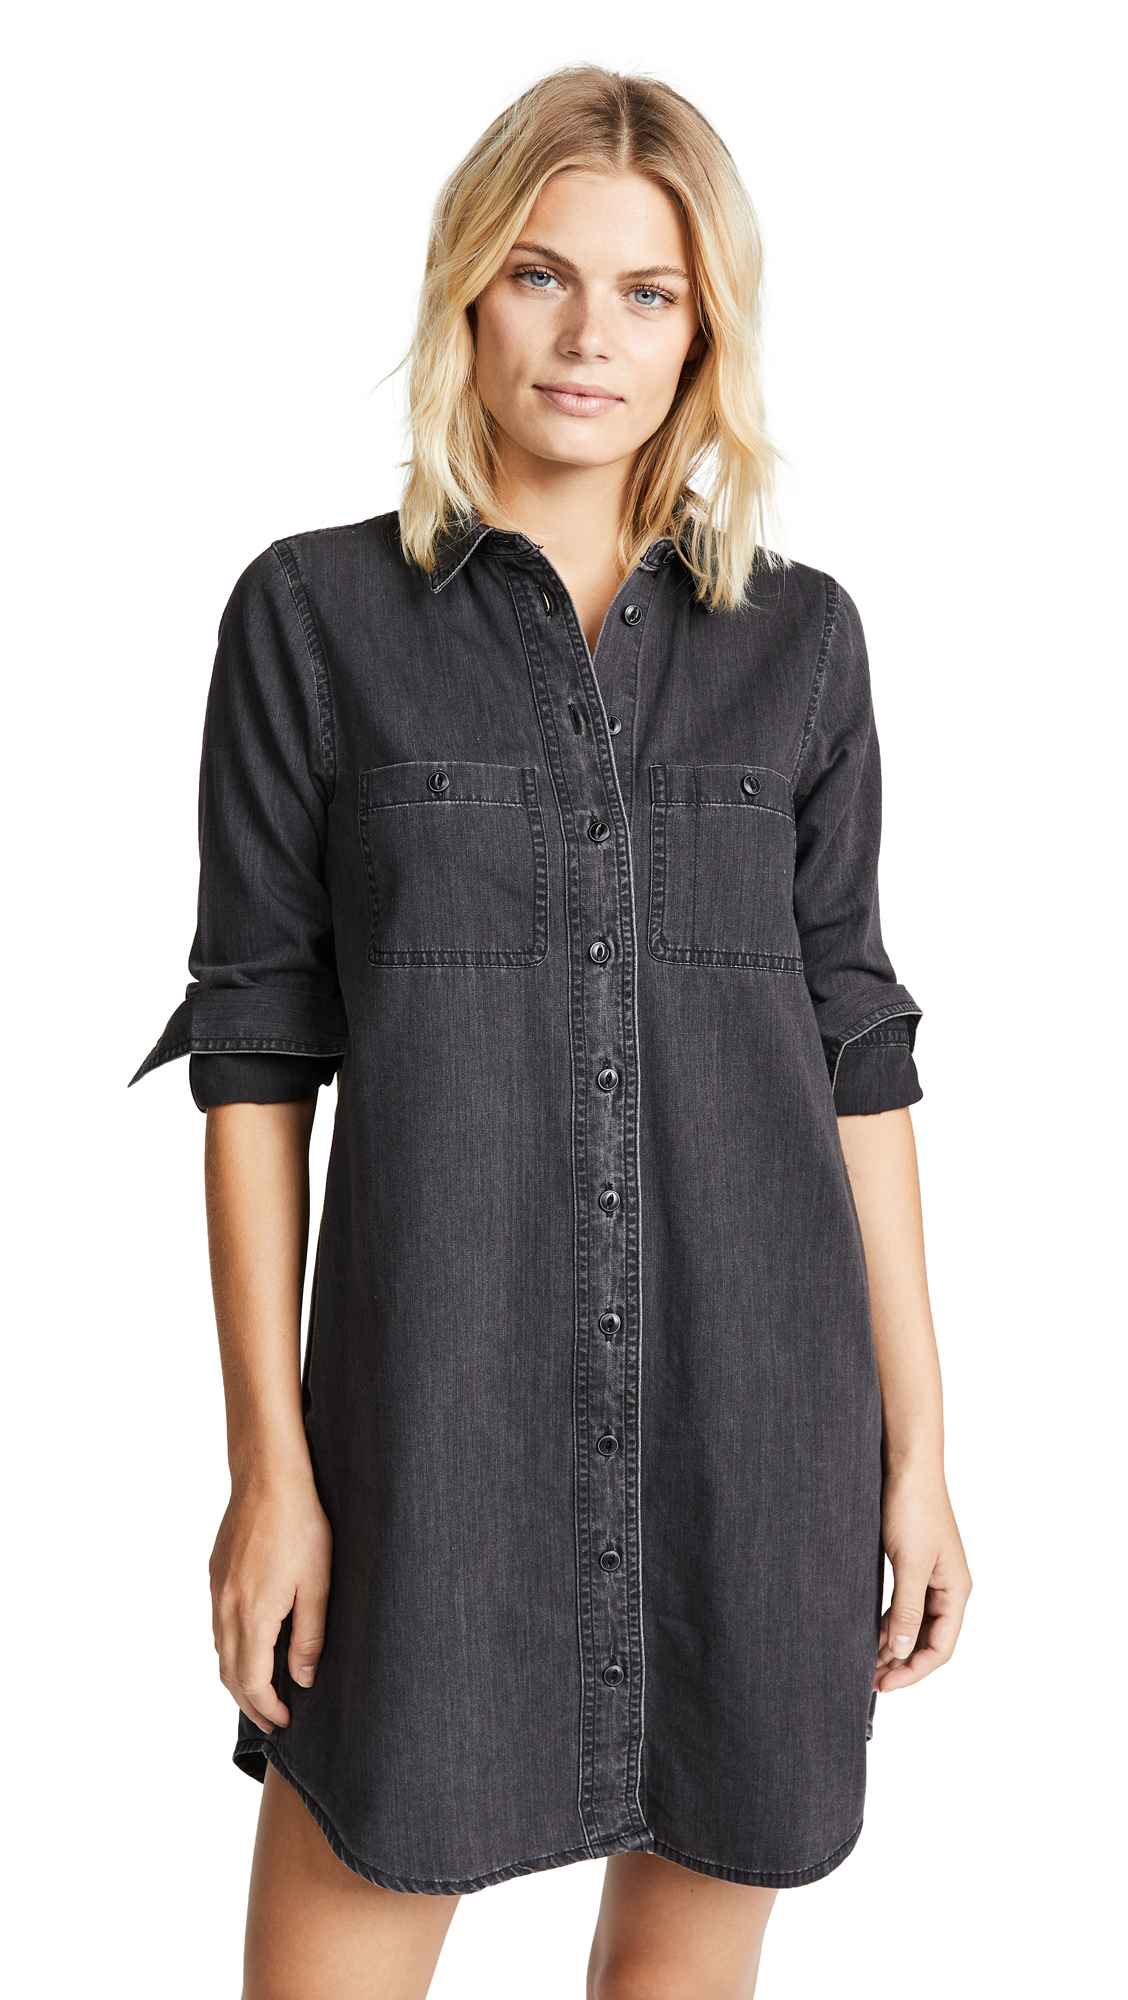 Buy Madewell Black Denim Shirtdress online beautiful Madewell Clothing, Dresses